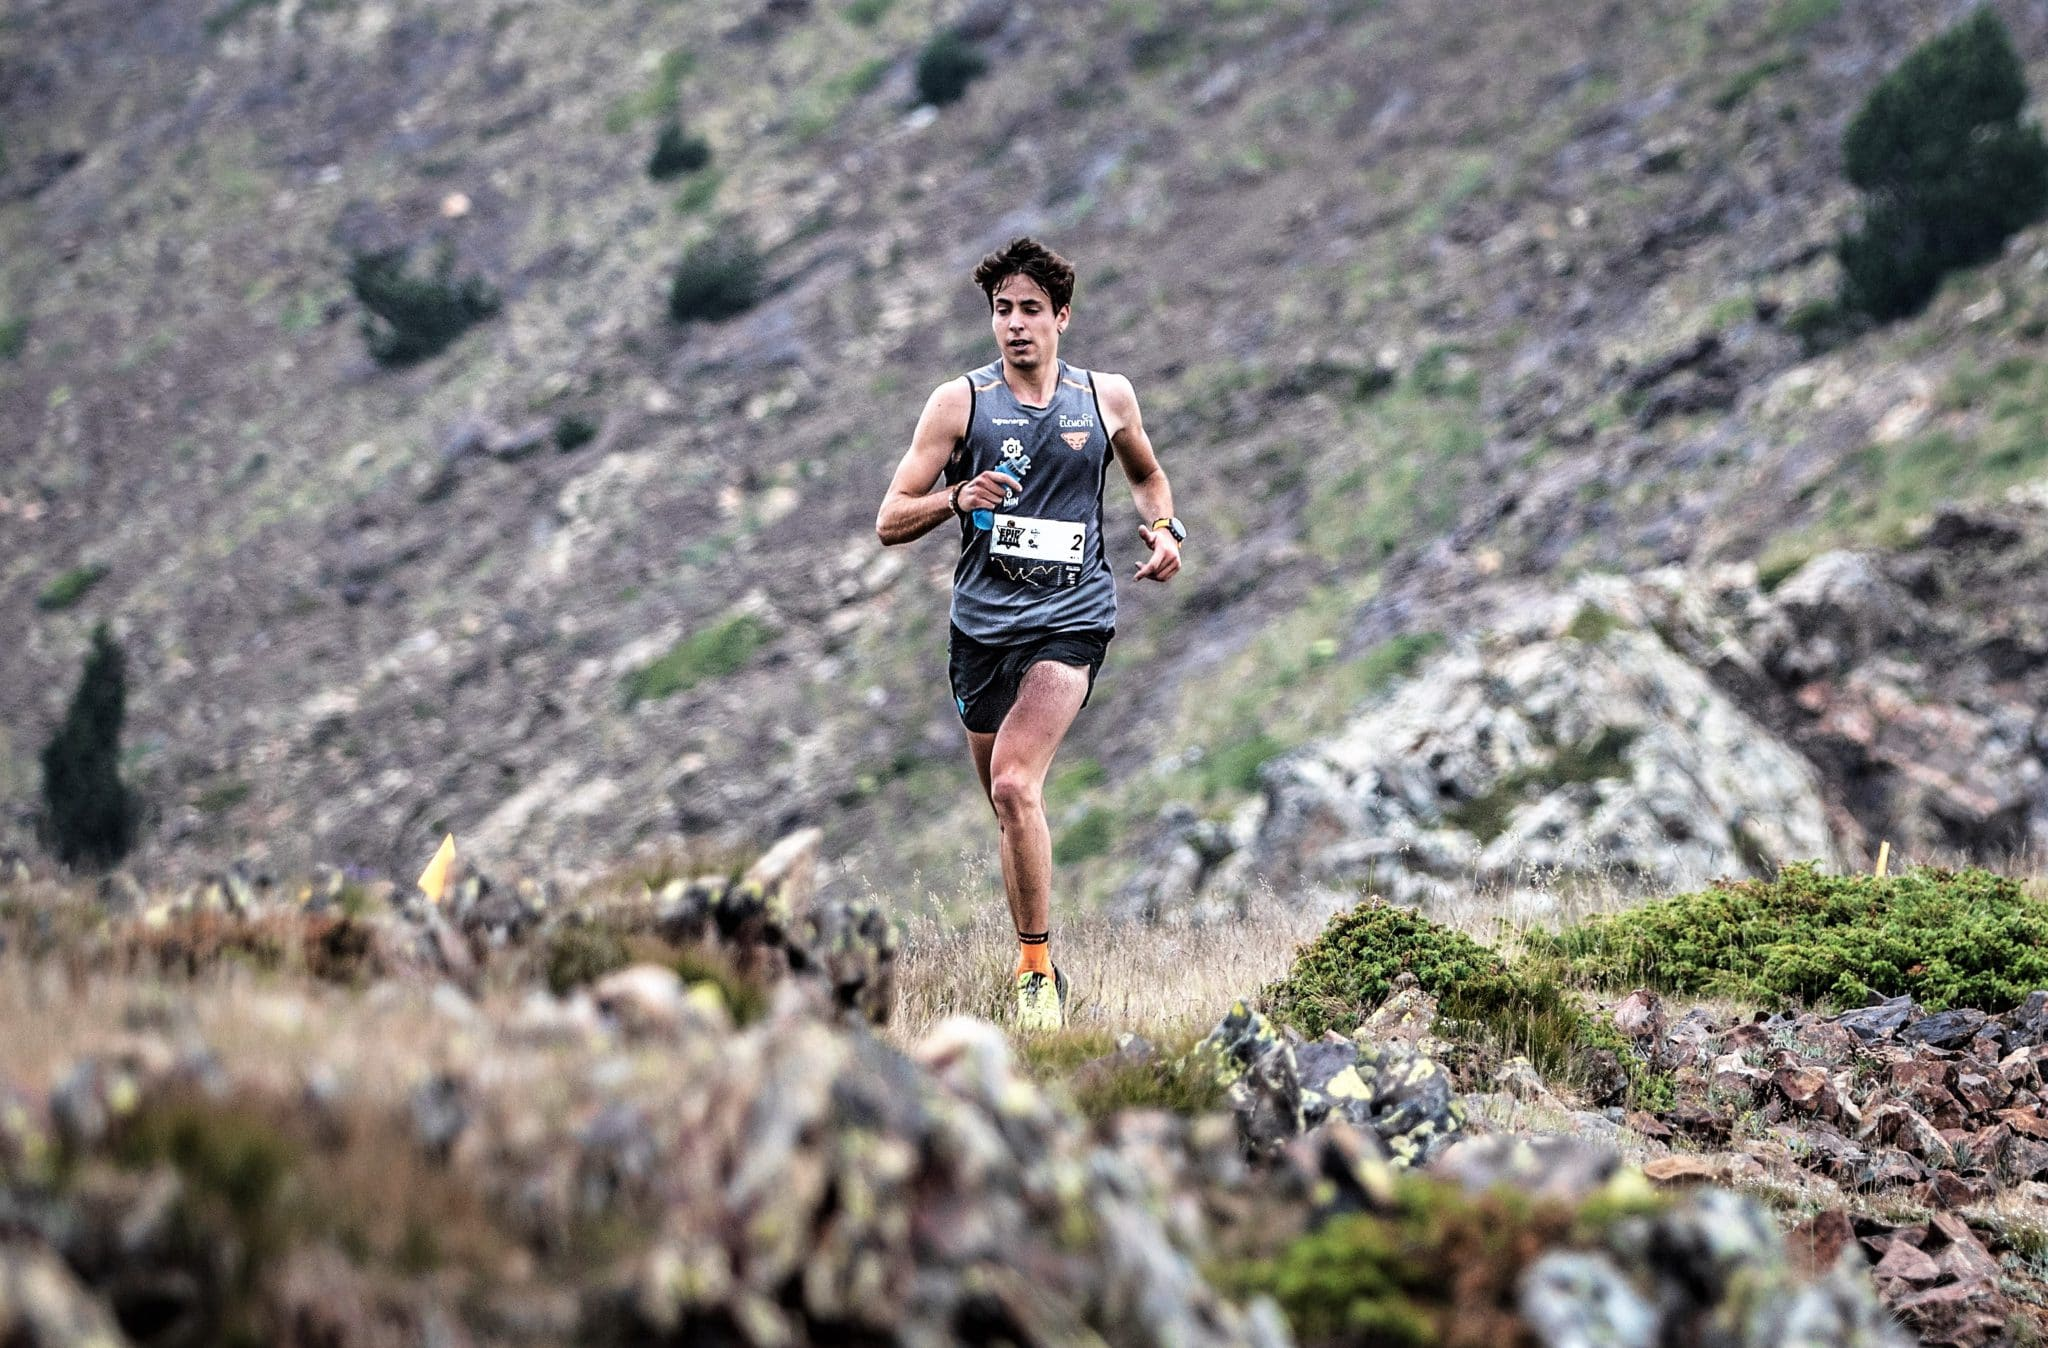 Copa del Mundo Skyrunner World Series